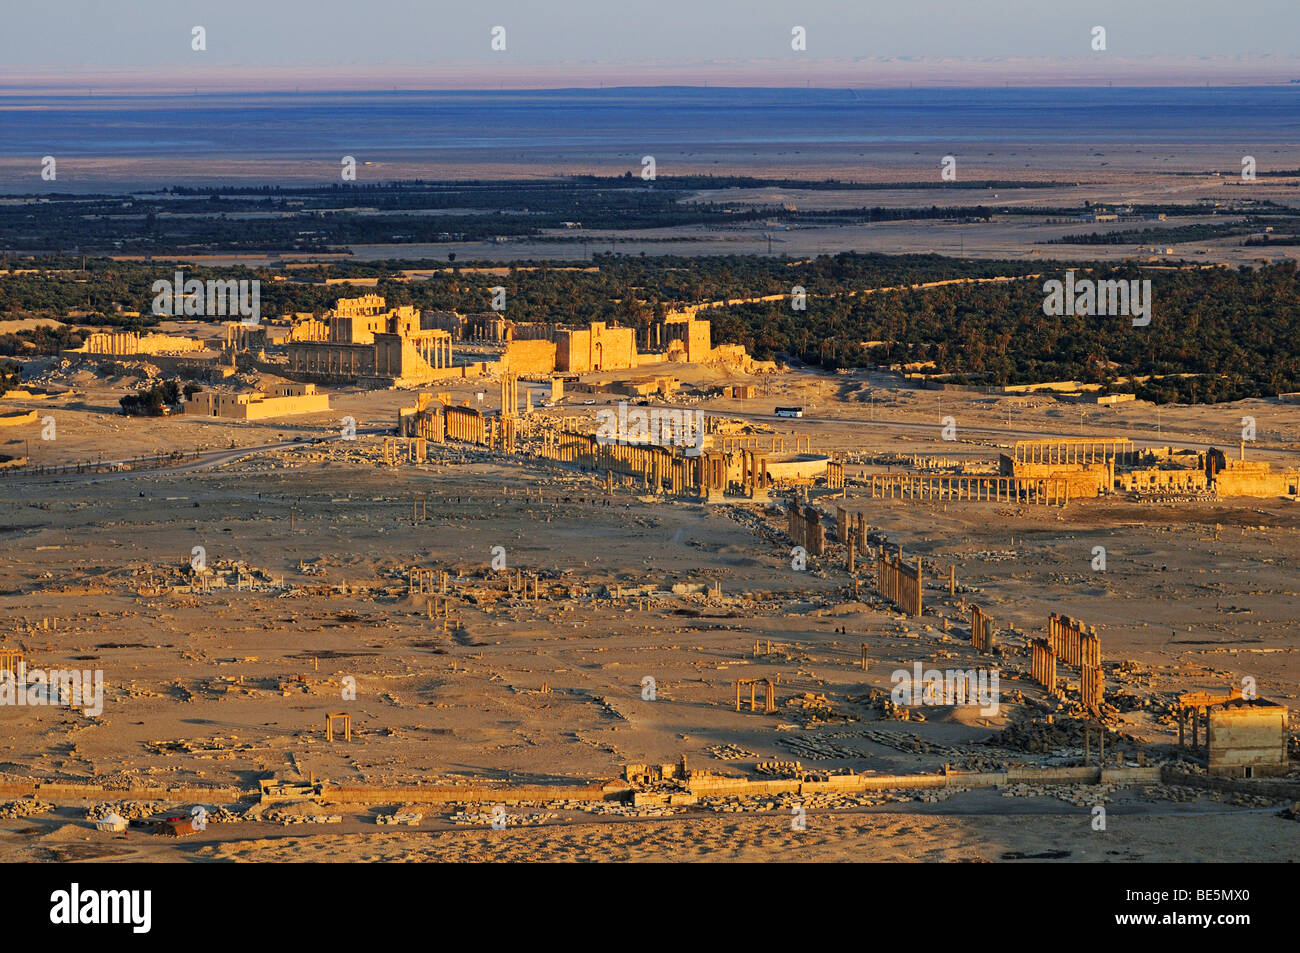 View from the castle Qala'at Ibn Ma'n on the ruins of the Palmyra archeological site, Tadmur, Syria, Asia - Stock Image